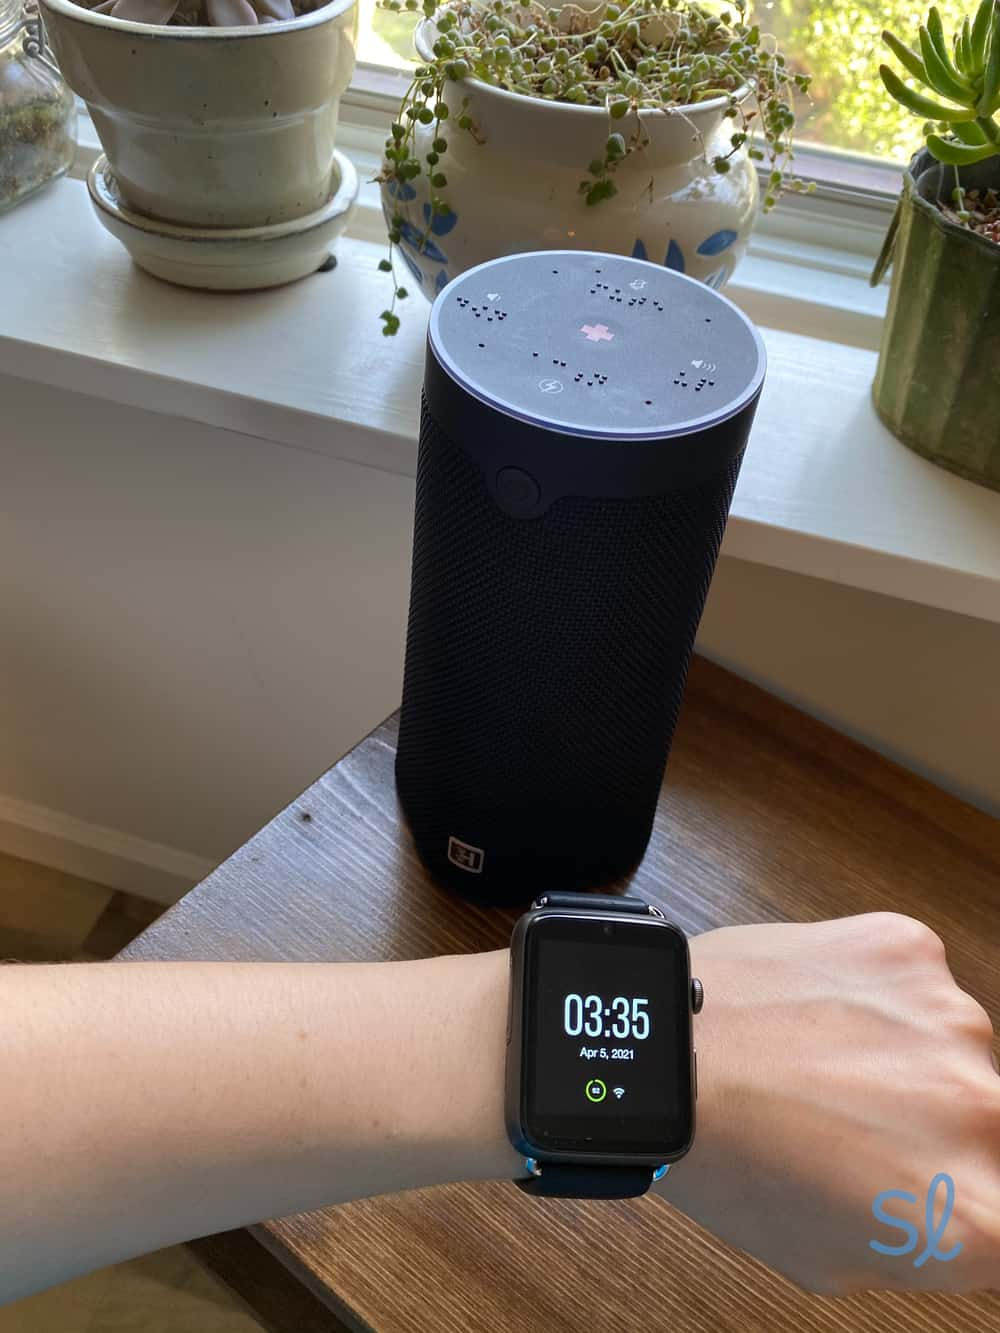 WellBe Medical Alert PLUS includes the Smart Speaker and Smartwatch